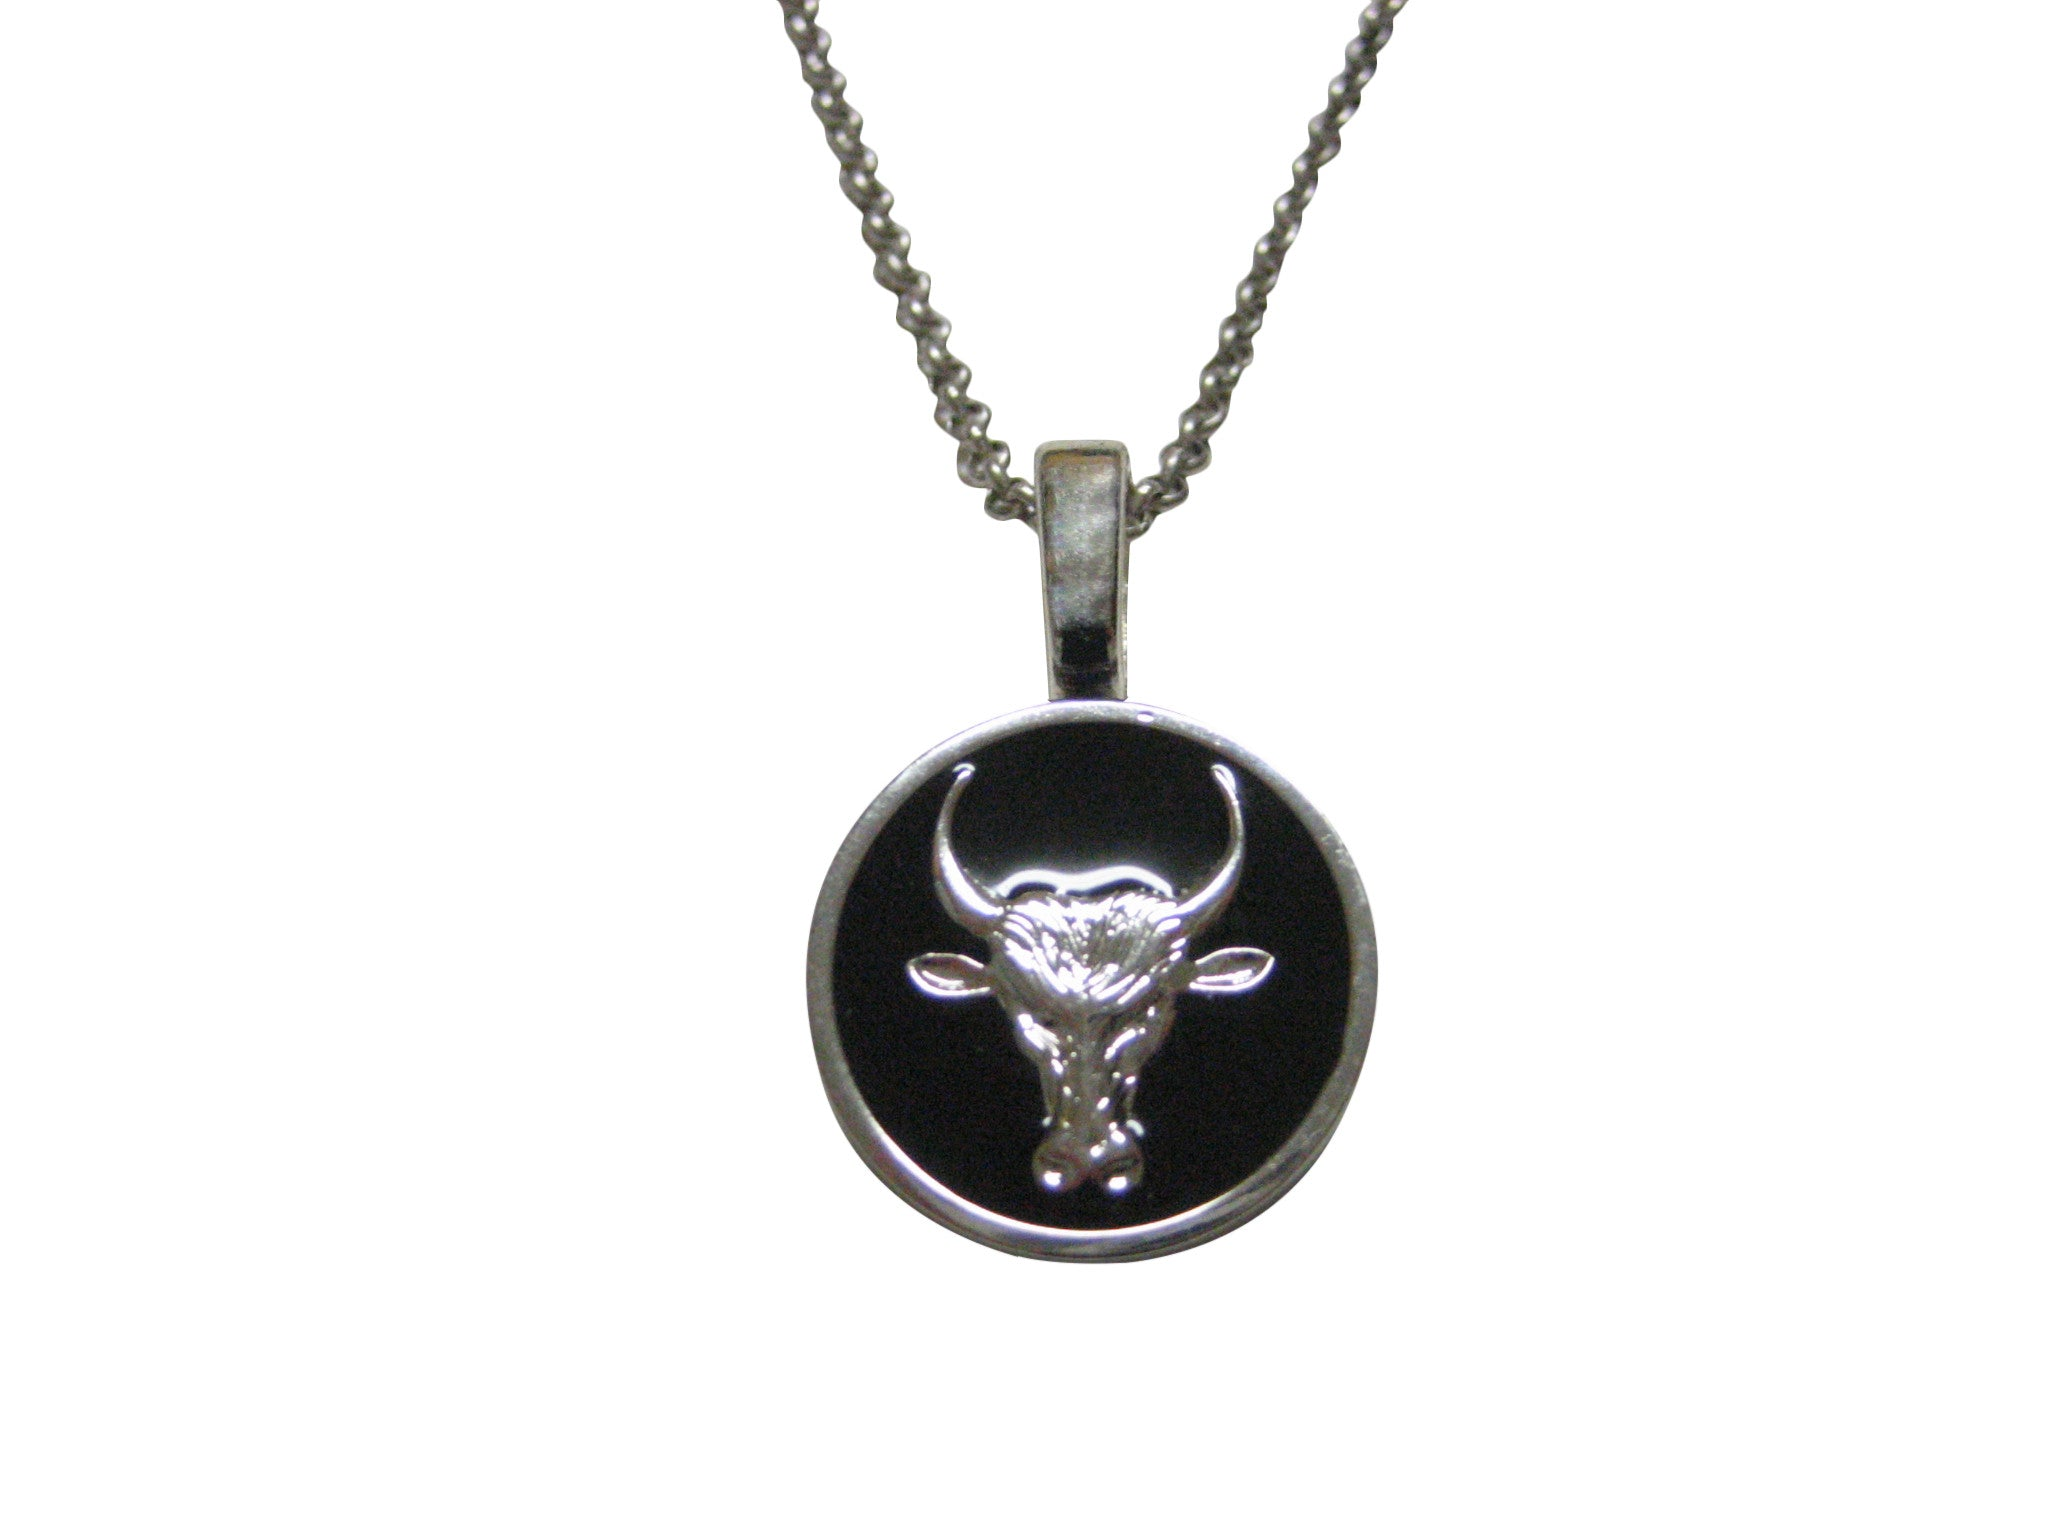 Bull Pendant Necklace